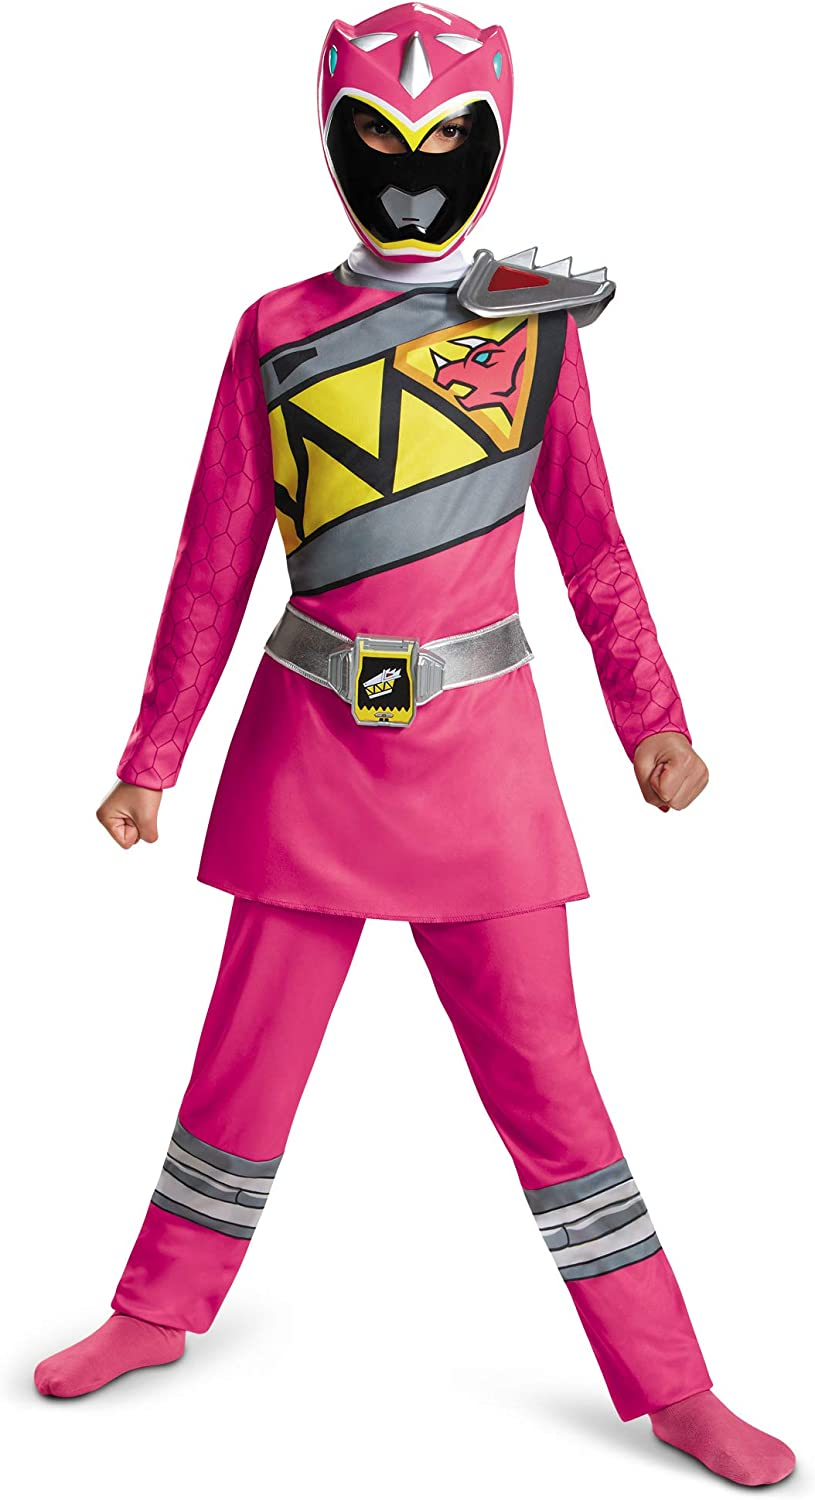 Power Rangers Costume For Girls Pink Dino Charge Kids Beast Morphers Ninja Dinosaur Pink Ranger For Kids Medium 7-8